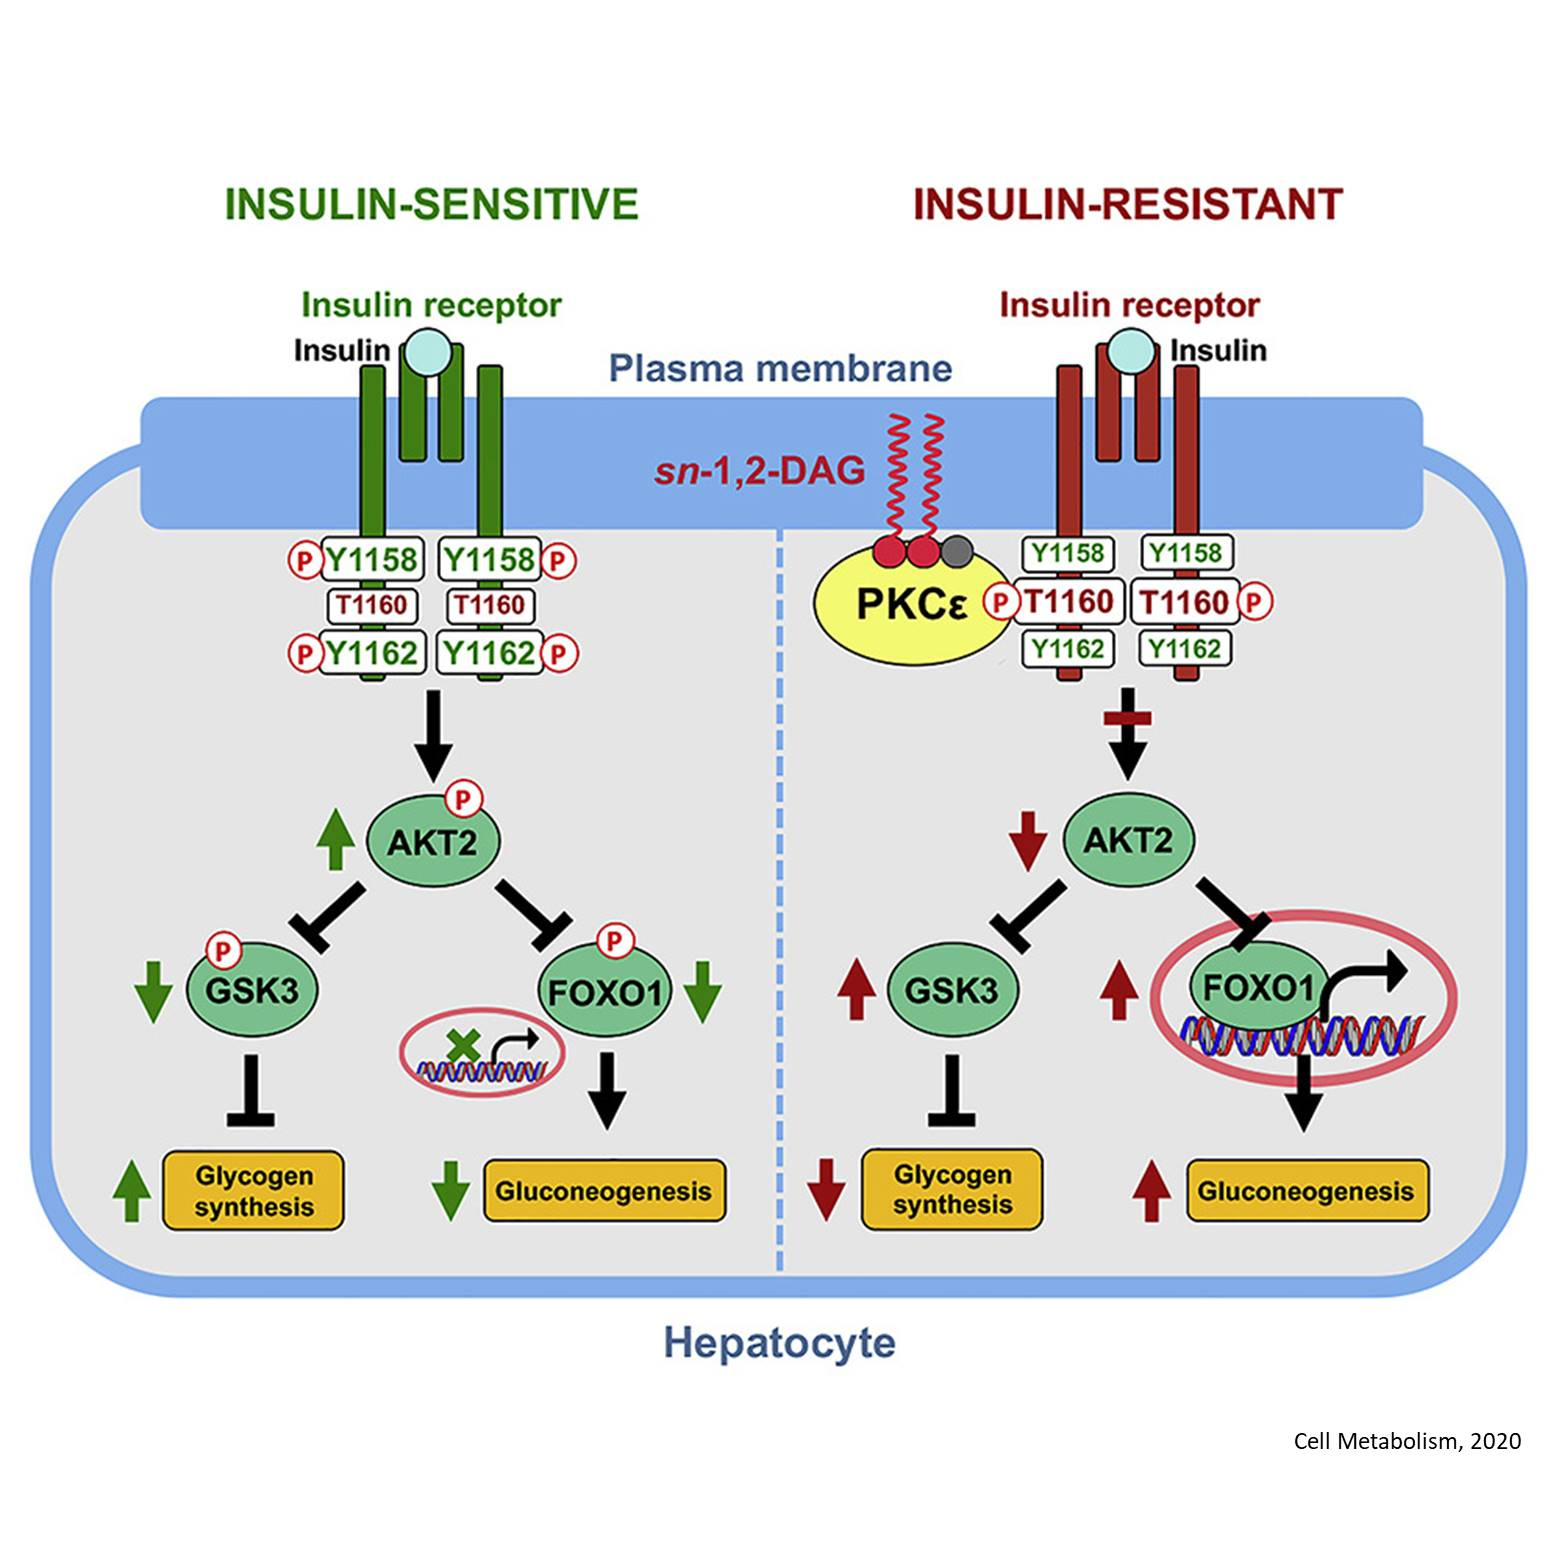 Link between liver disease and insulin resistance identified!